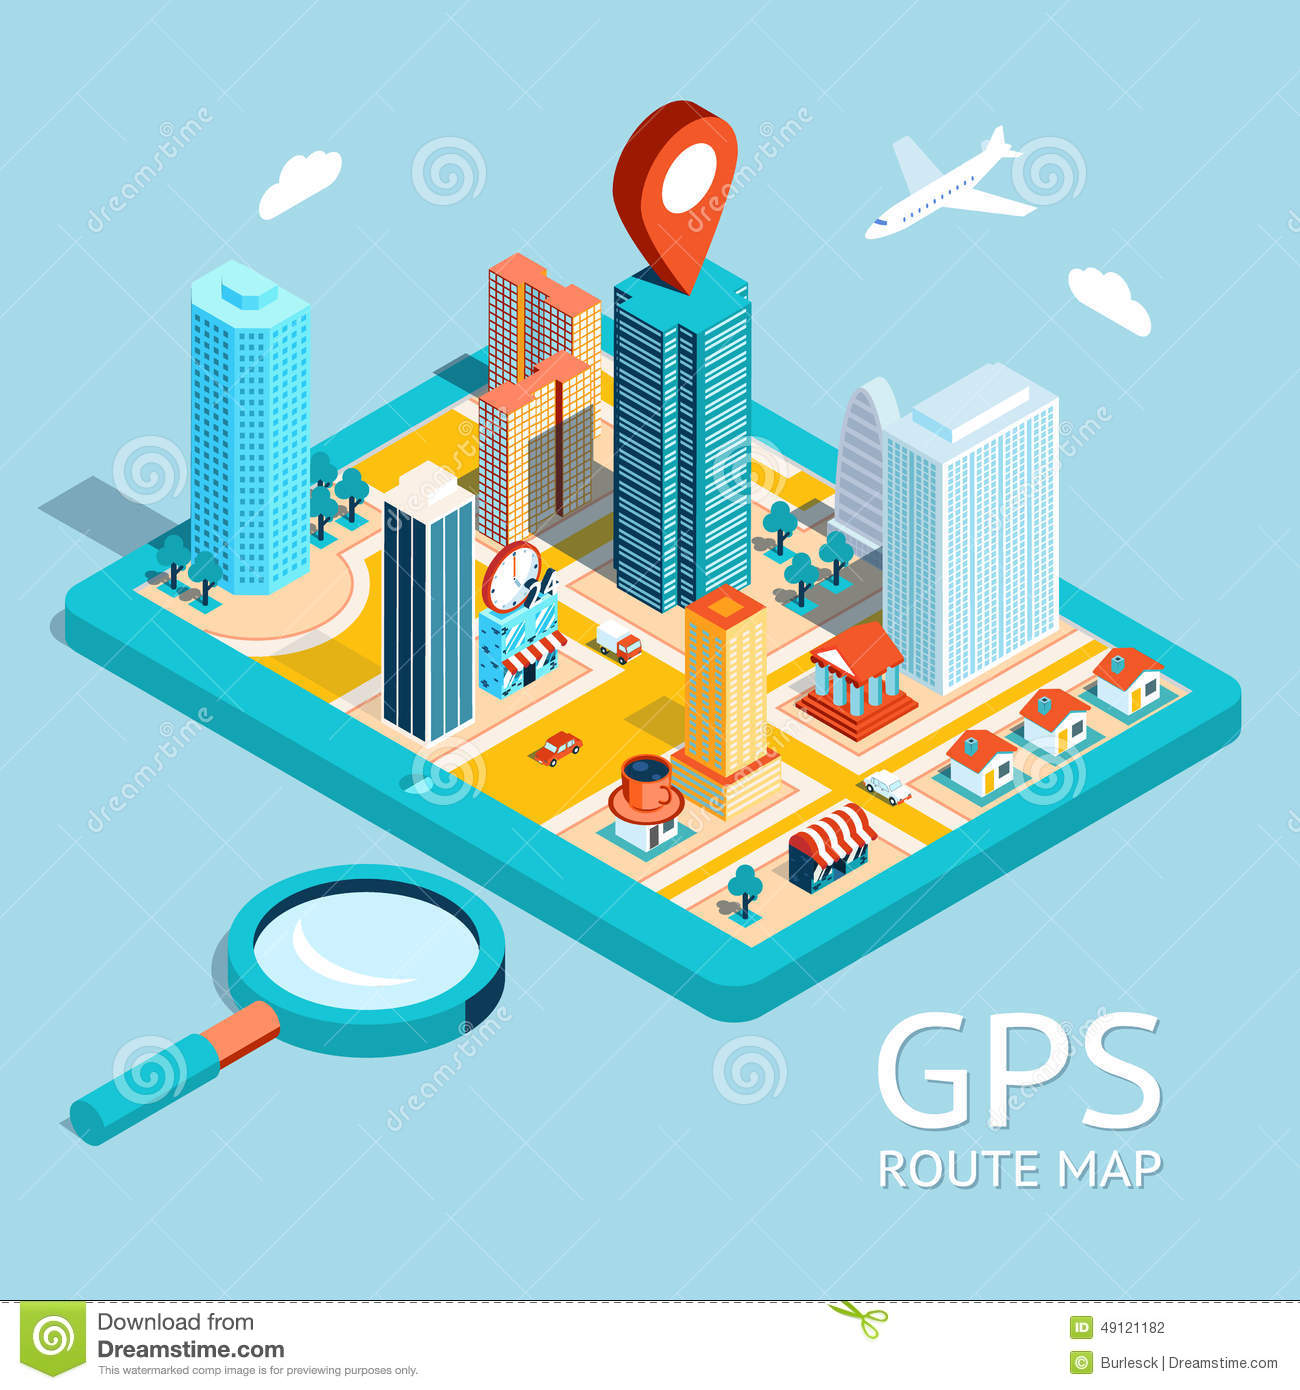 Gps Route Map City Navigation App Stock Illustration